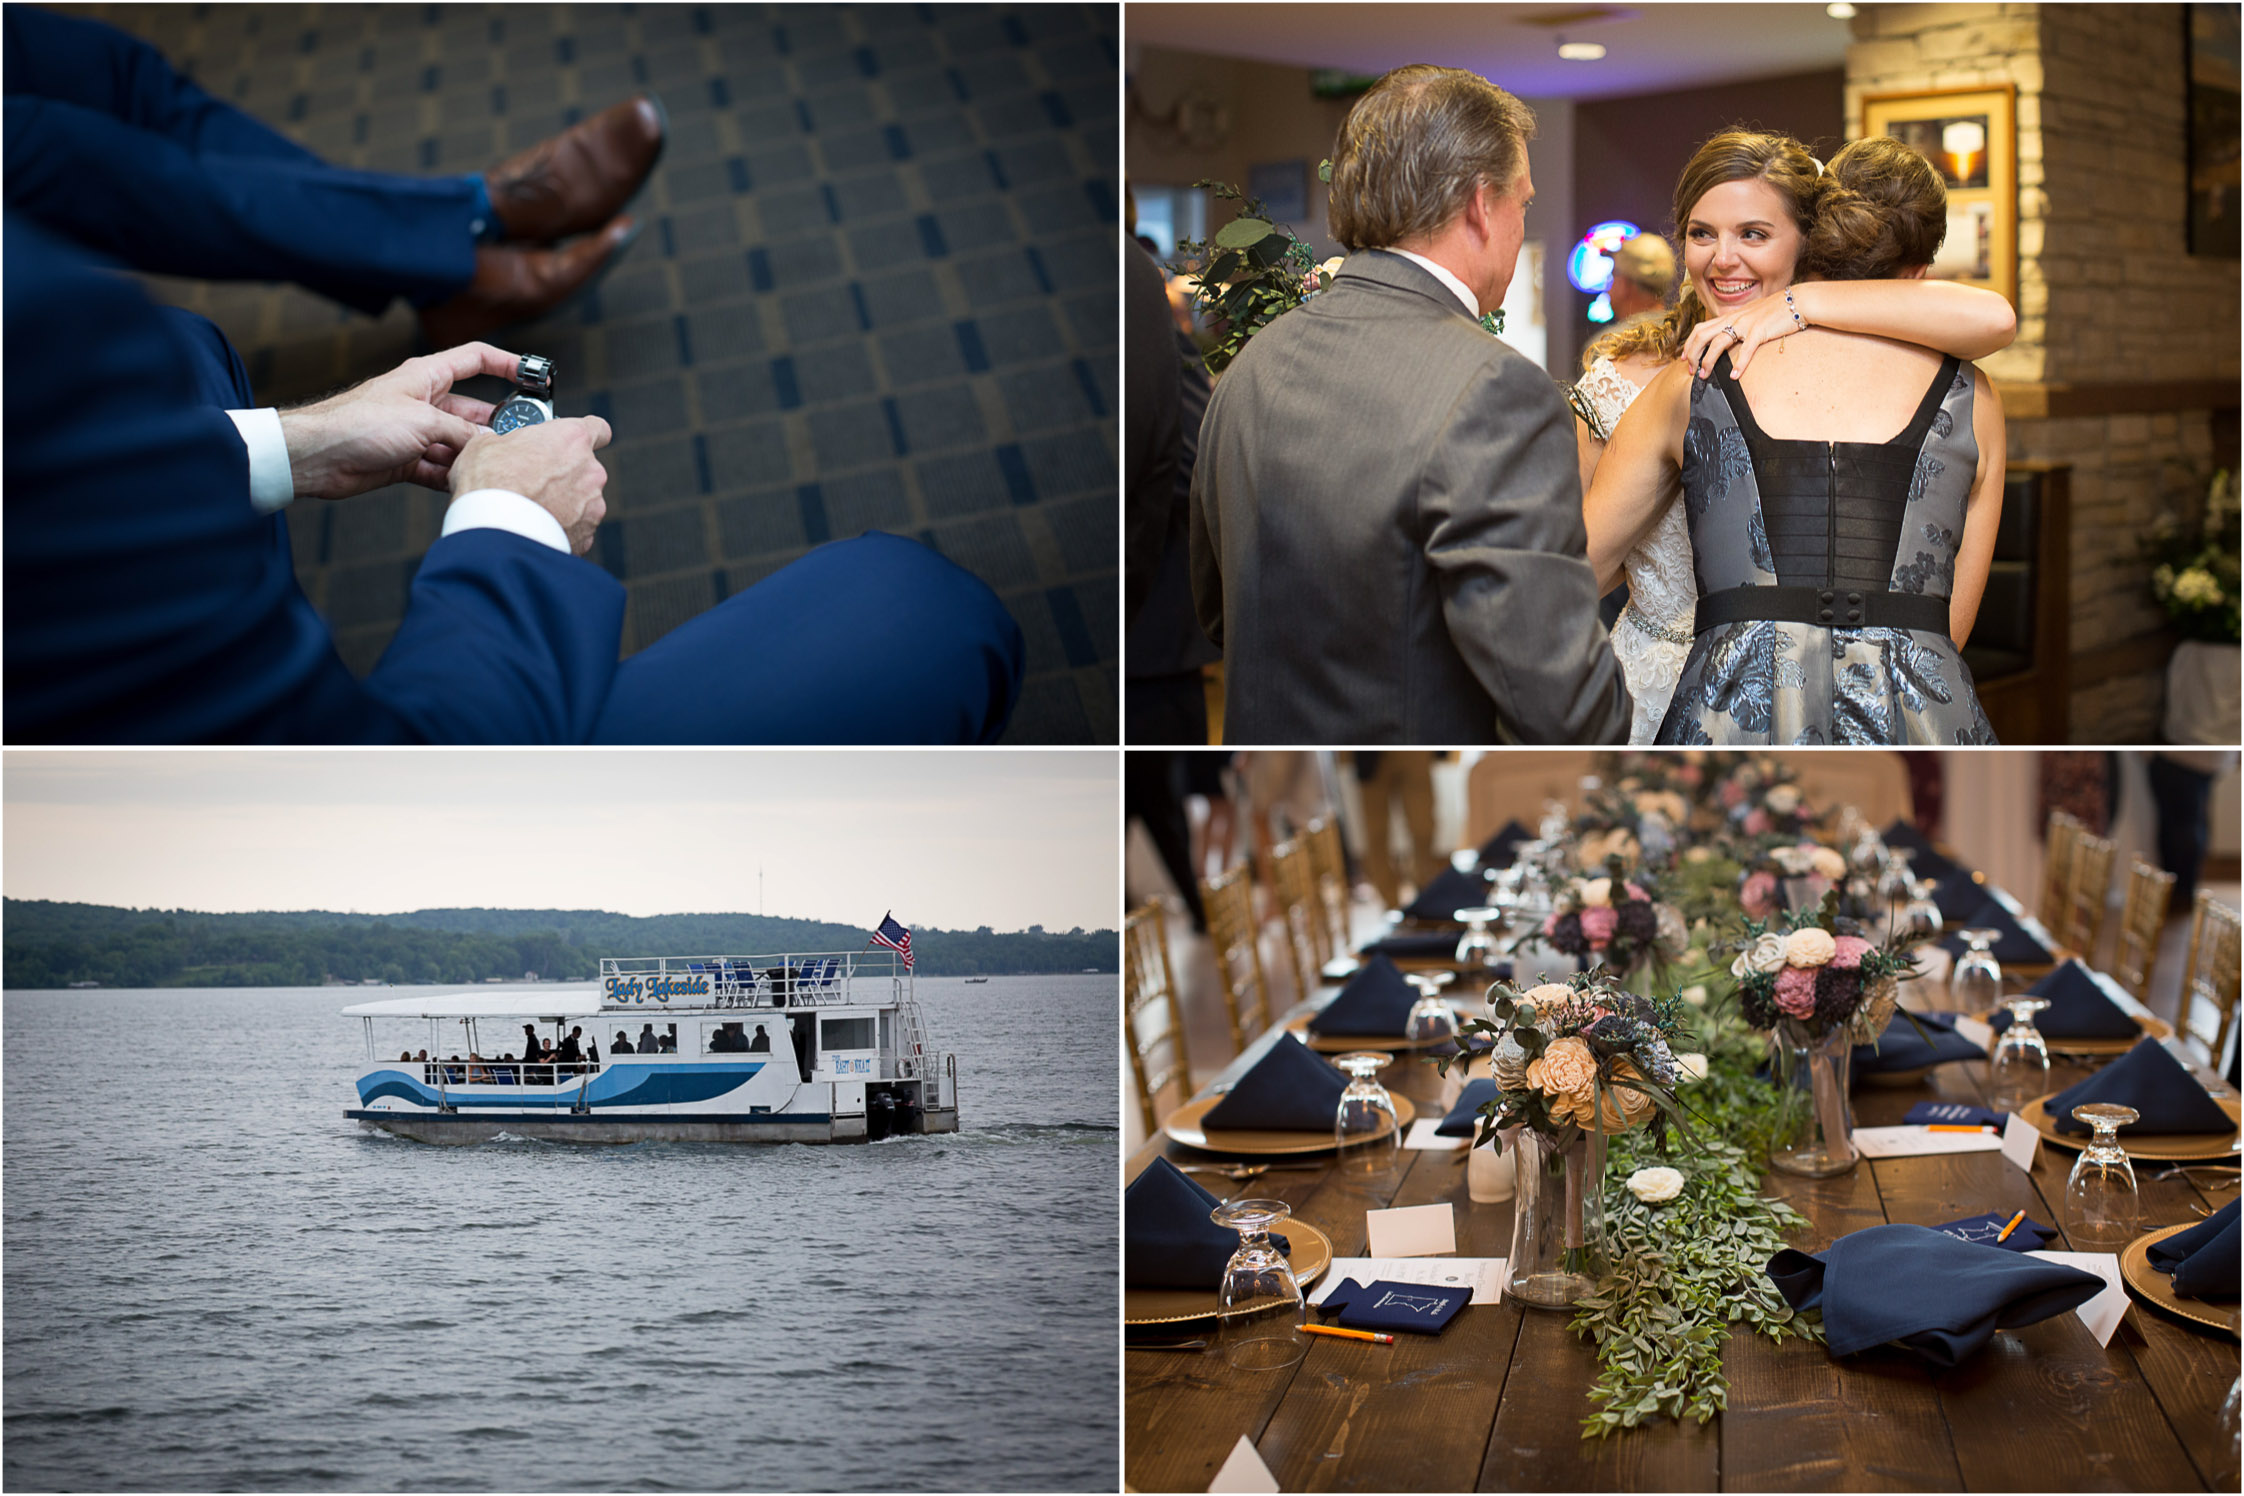 16-northern-minnesota-summer-lake-wedding-reception-head-table-details-post-ceremony-joy-boat-ride-mahonen-photography.jpg